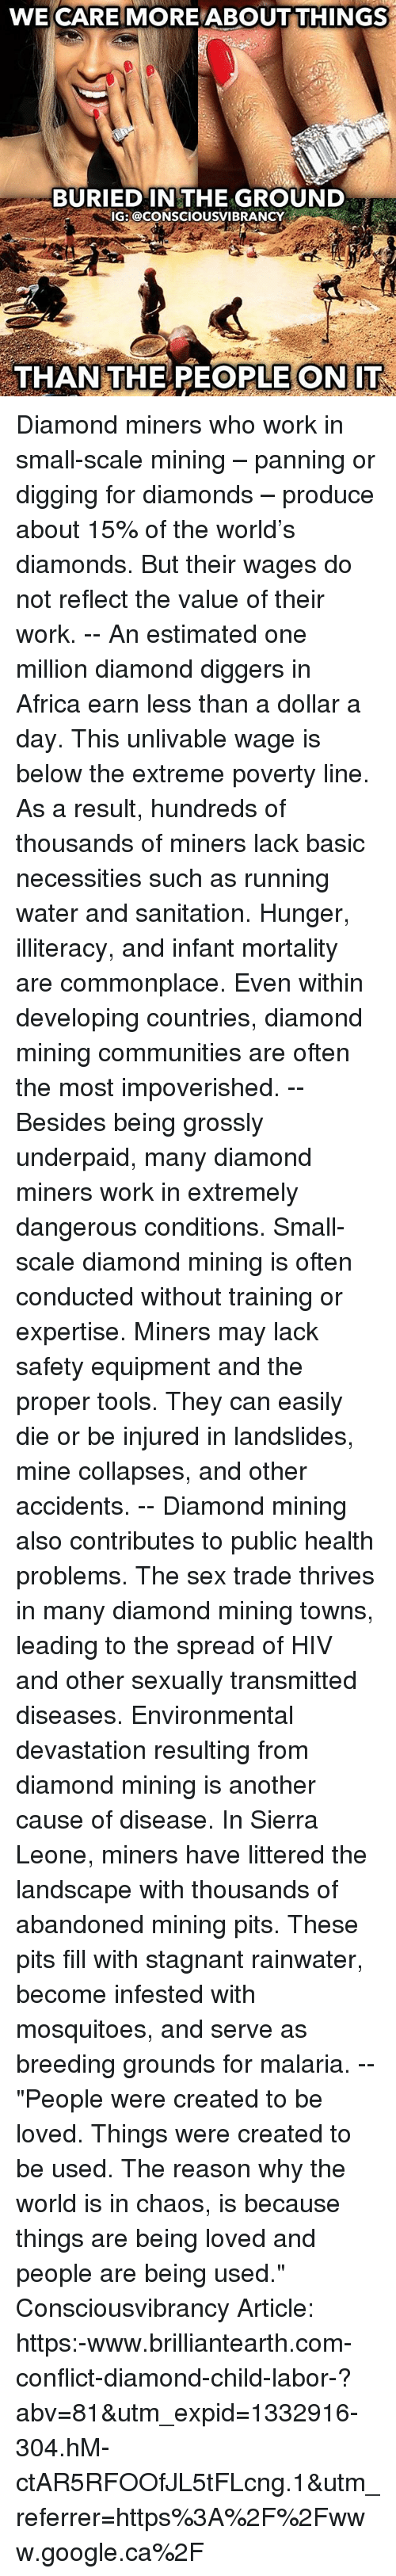 """Spreaded: WE CARE MORE ABOUTTHINGS  BURIED IN THE GROUND  IG: @CONSCIOUSVIBRANCY  THAN THE REOPLE ONIT Diamond miners who work in small-scale mining – panning or digging for diamonds – produce about 15% of the world's diamonds. But their wages do not reflect the value of their work. -- An estimated one million diamond diggers in Africa earn less than a dollar a day. This unlivable wage is below the extreme poverty line. As a result, hundreds of thousands of miners lack basic necessities such as running water and sanitation. Hunger, illiteracy, and infant mortality are commonplace. Even within developing countries, diamond mining communities are often the most impoverished. -- Besides being grossly underpaid, many diamond miners work in extremely dangerous conditions. Small-scale diamond mining is often conducted without training or expertise. Miners may lack safety equipment and the proper tools. They can easily die or be injured in landslides, mine collapses, and other accidents. -- Diamond mining also contributes to public health problems. The sex trade thrives in many diamond mining towns, leading to the spread of HIV and other sexually transmitted diseases. Environmental devastation resulting from diamond mining is another cause of disease. In Sierra Leone, miners have littered the landscape with thousands of abandoned mining pits. These pits fill with stagnant rainwater, become infested with mosquitoes, and serve as breeding grounds for malaria. -- """"People were created to be loved. Things were created to be used. The reason why the world is in chaos, is because things are being loved and people are being used."""" Consciousvibrancy Article: https:-www.brilliantearth.com-conflict-diamond-child-labor-?abv=81&utm_expid=1332916-304.hM-ctAR5RFOOfJL5tFLcng.1&utm_referrer=https%3A%2F%2Fwww.google.ca%2F"""